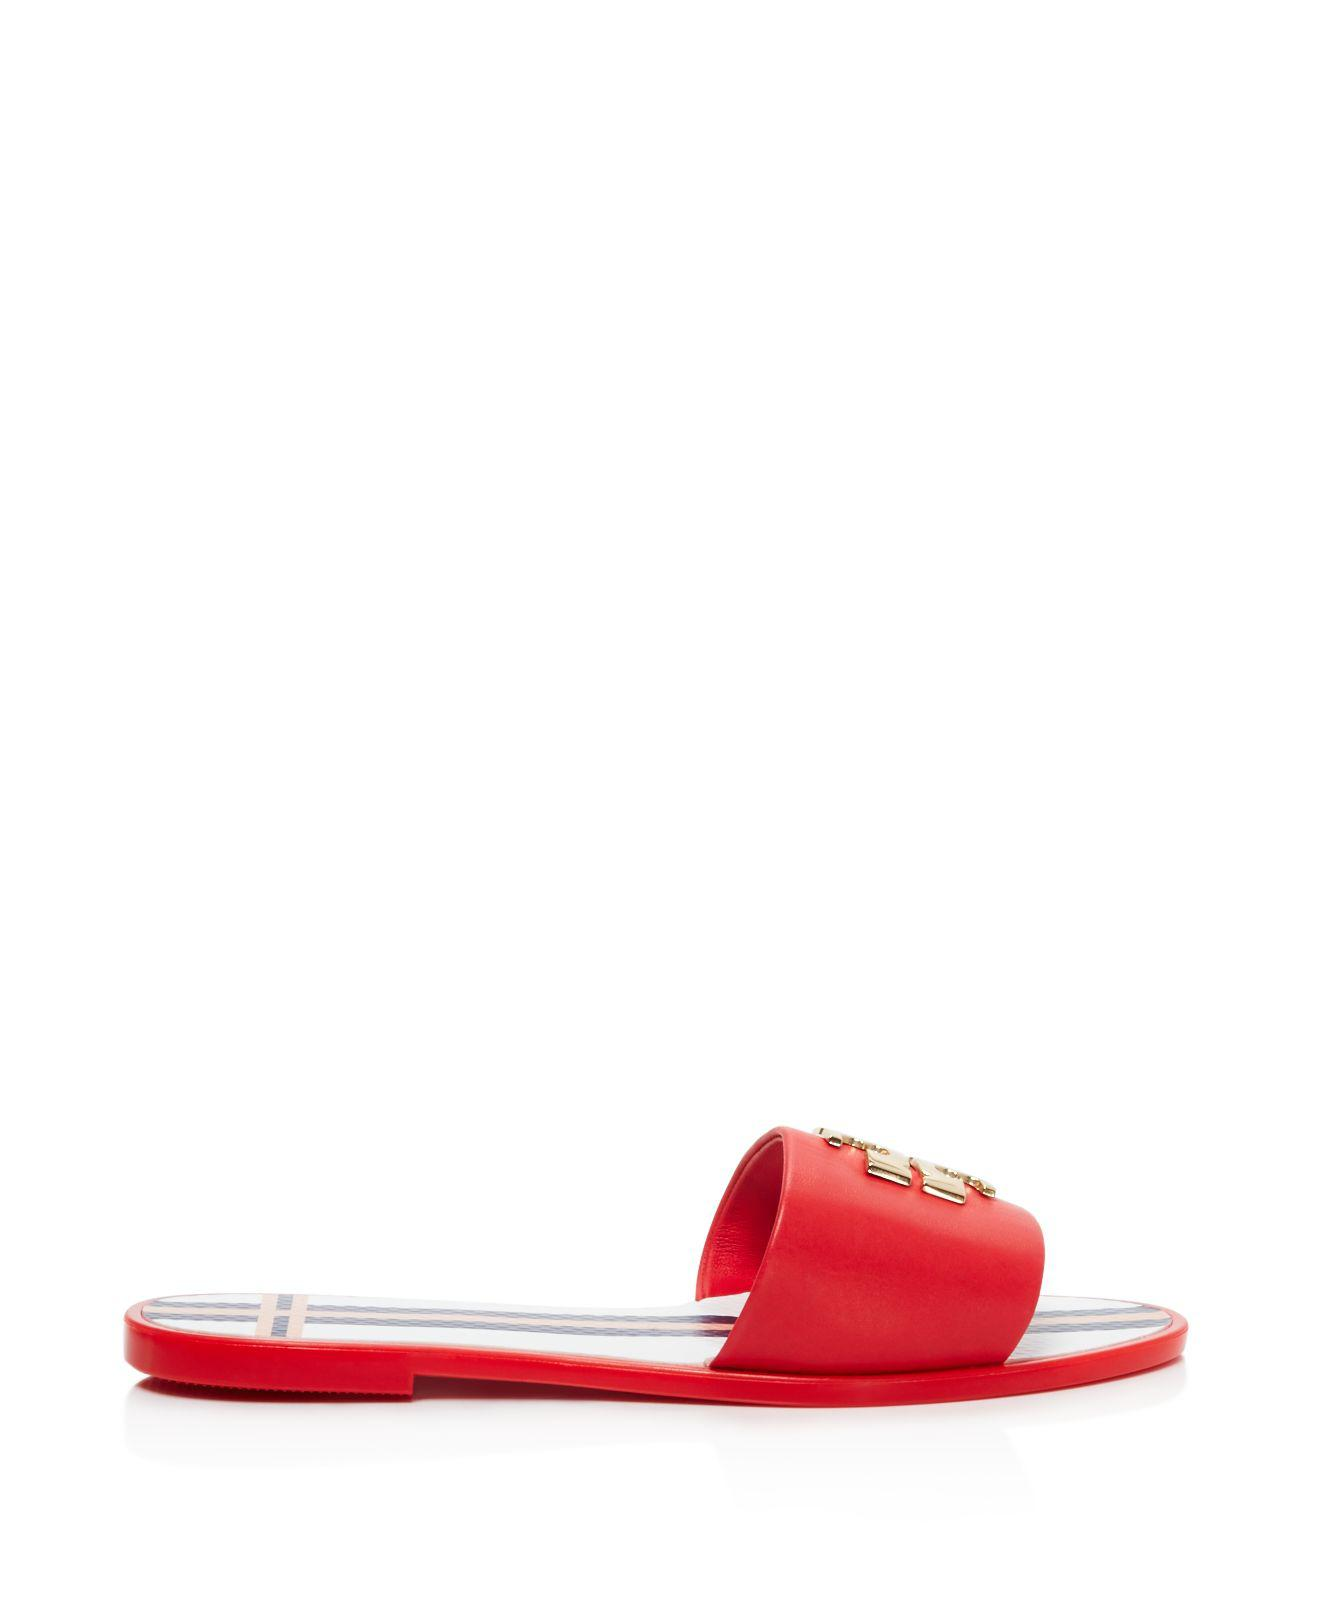 5d1d4501f Lyst - Tory Burch Logo Jelly Slide Sandals in Red